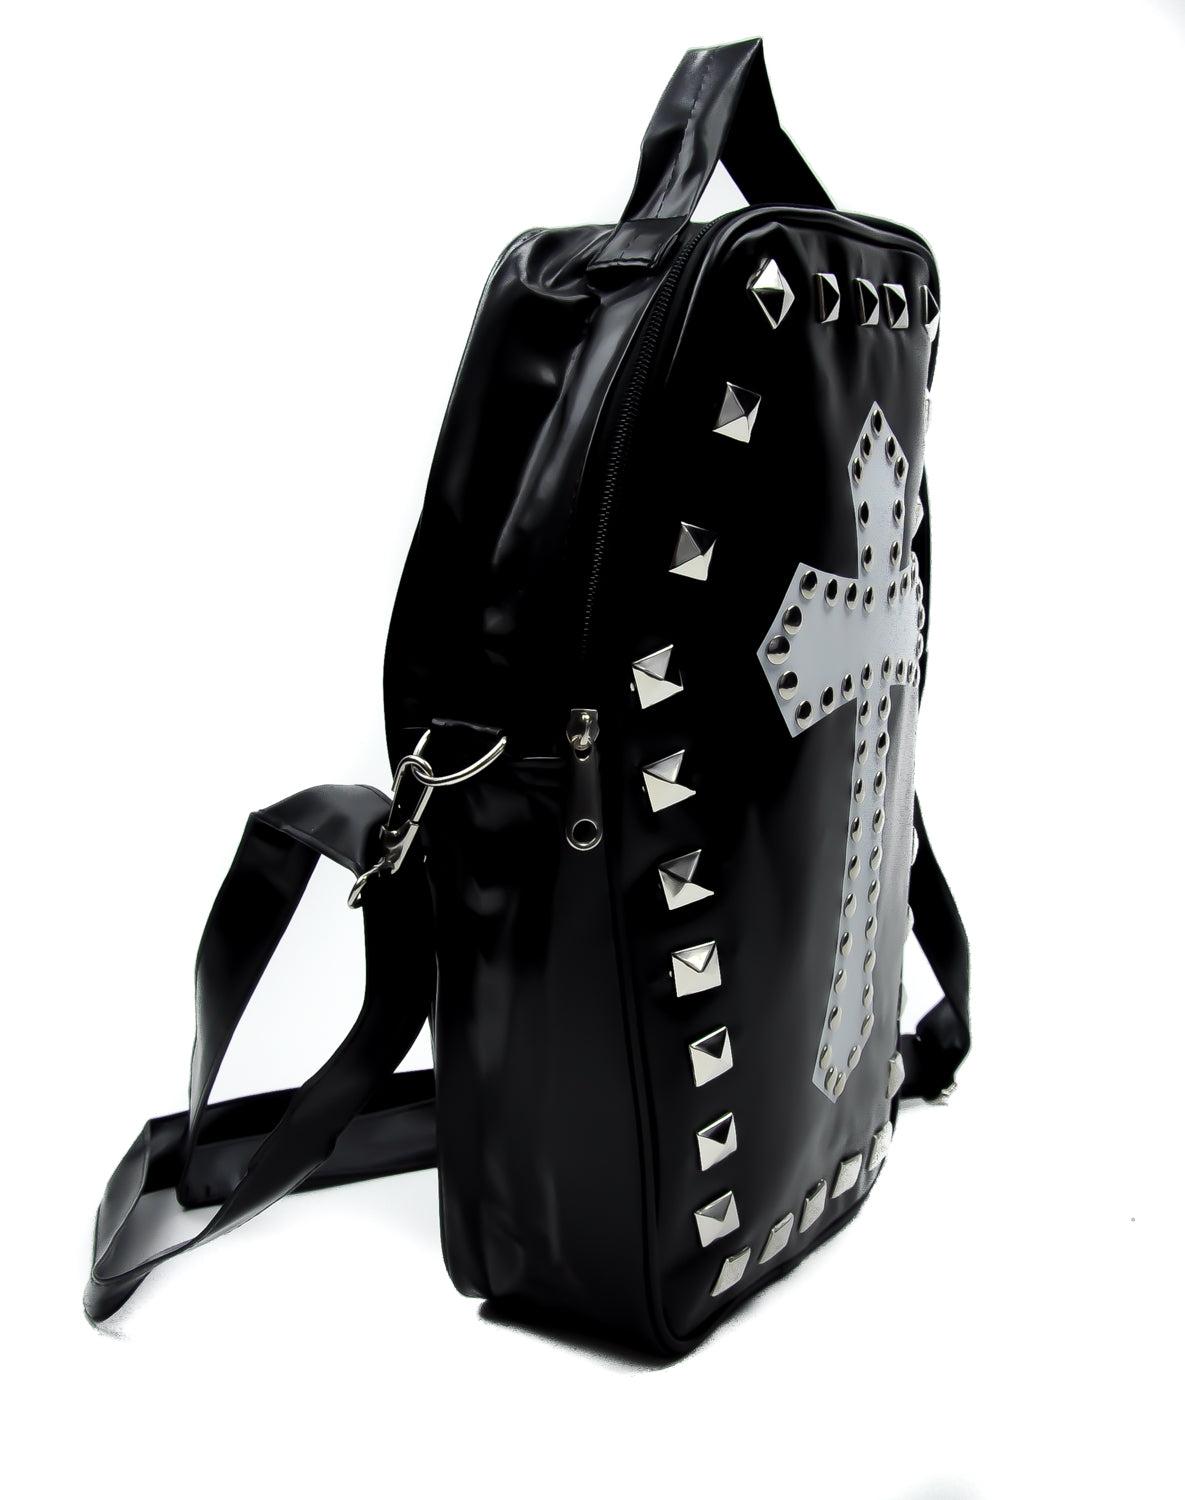 Studded Cross Coffin Sling Bag Cross Body w/ Pyramid Studs Gothic Clothing Deathrock